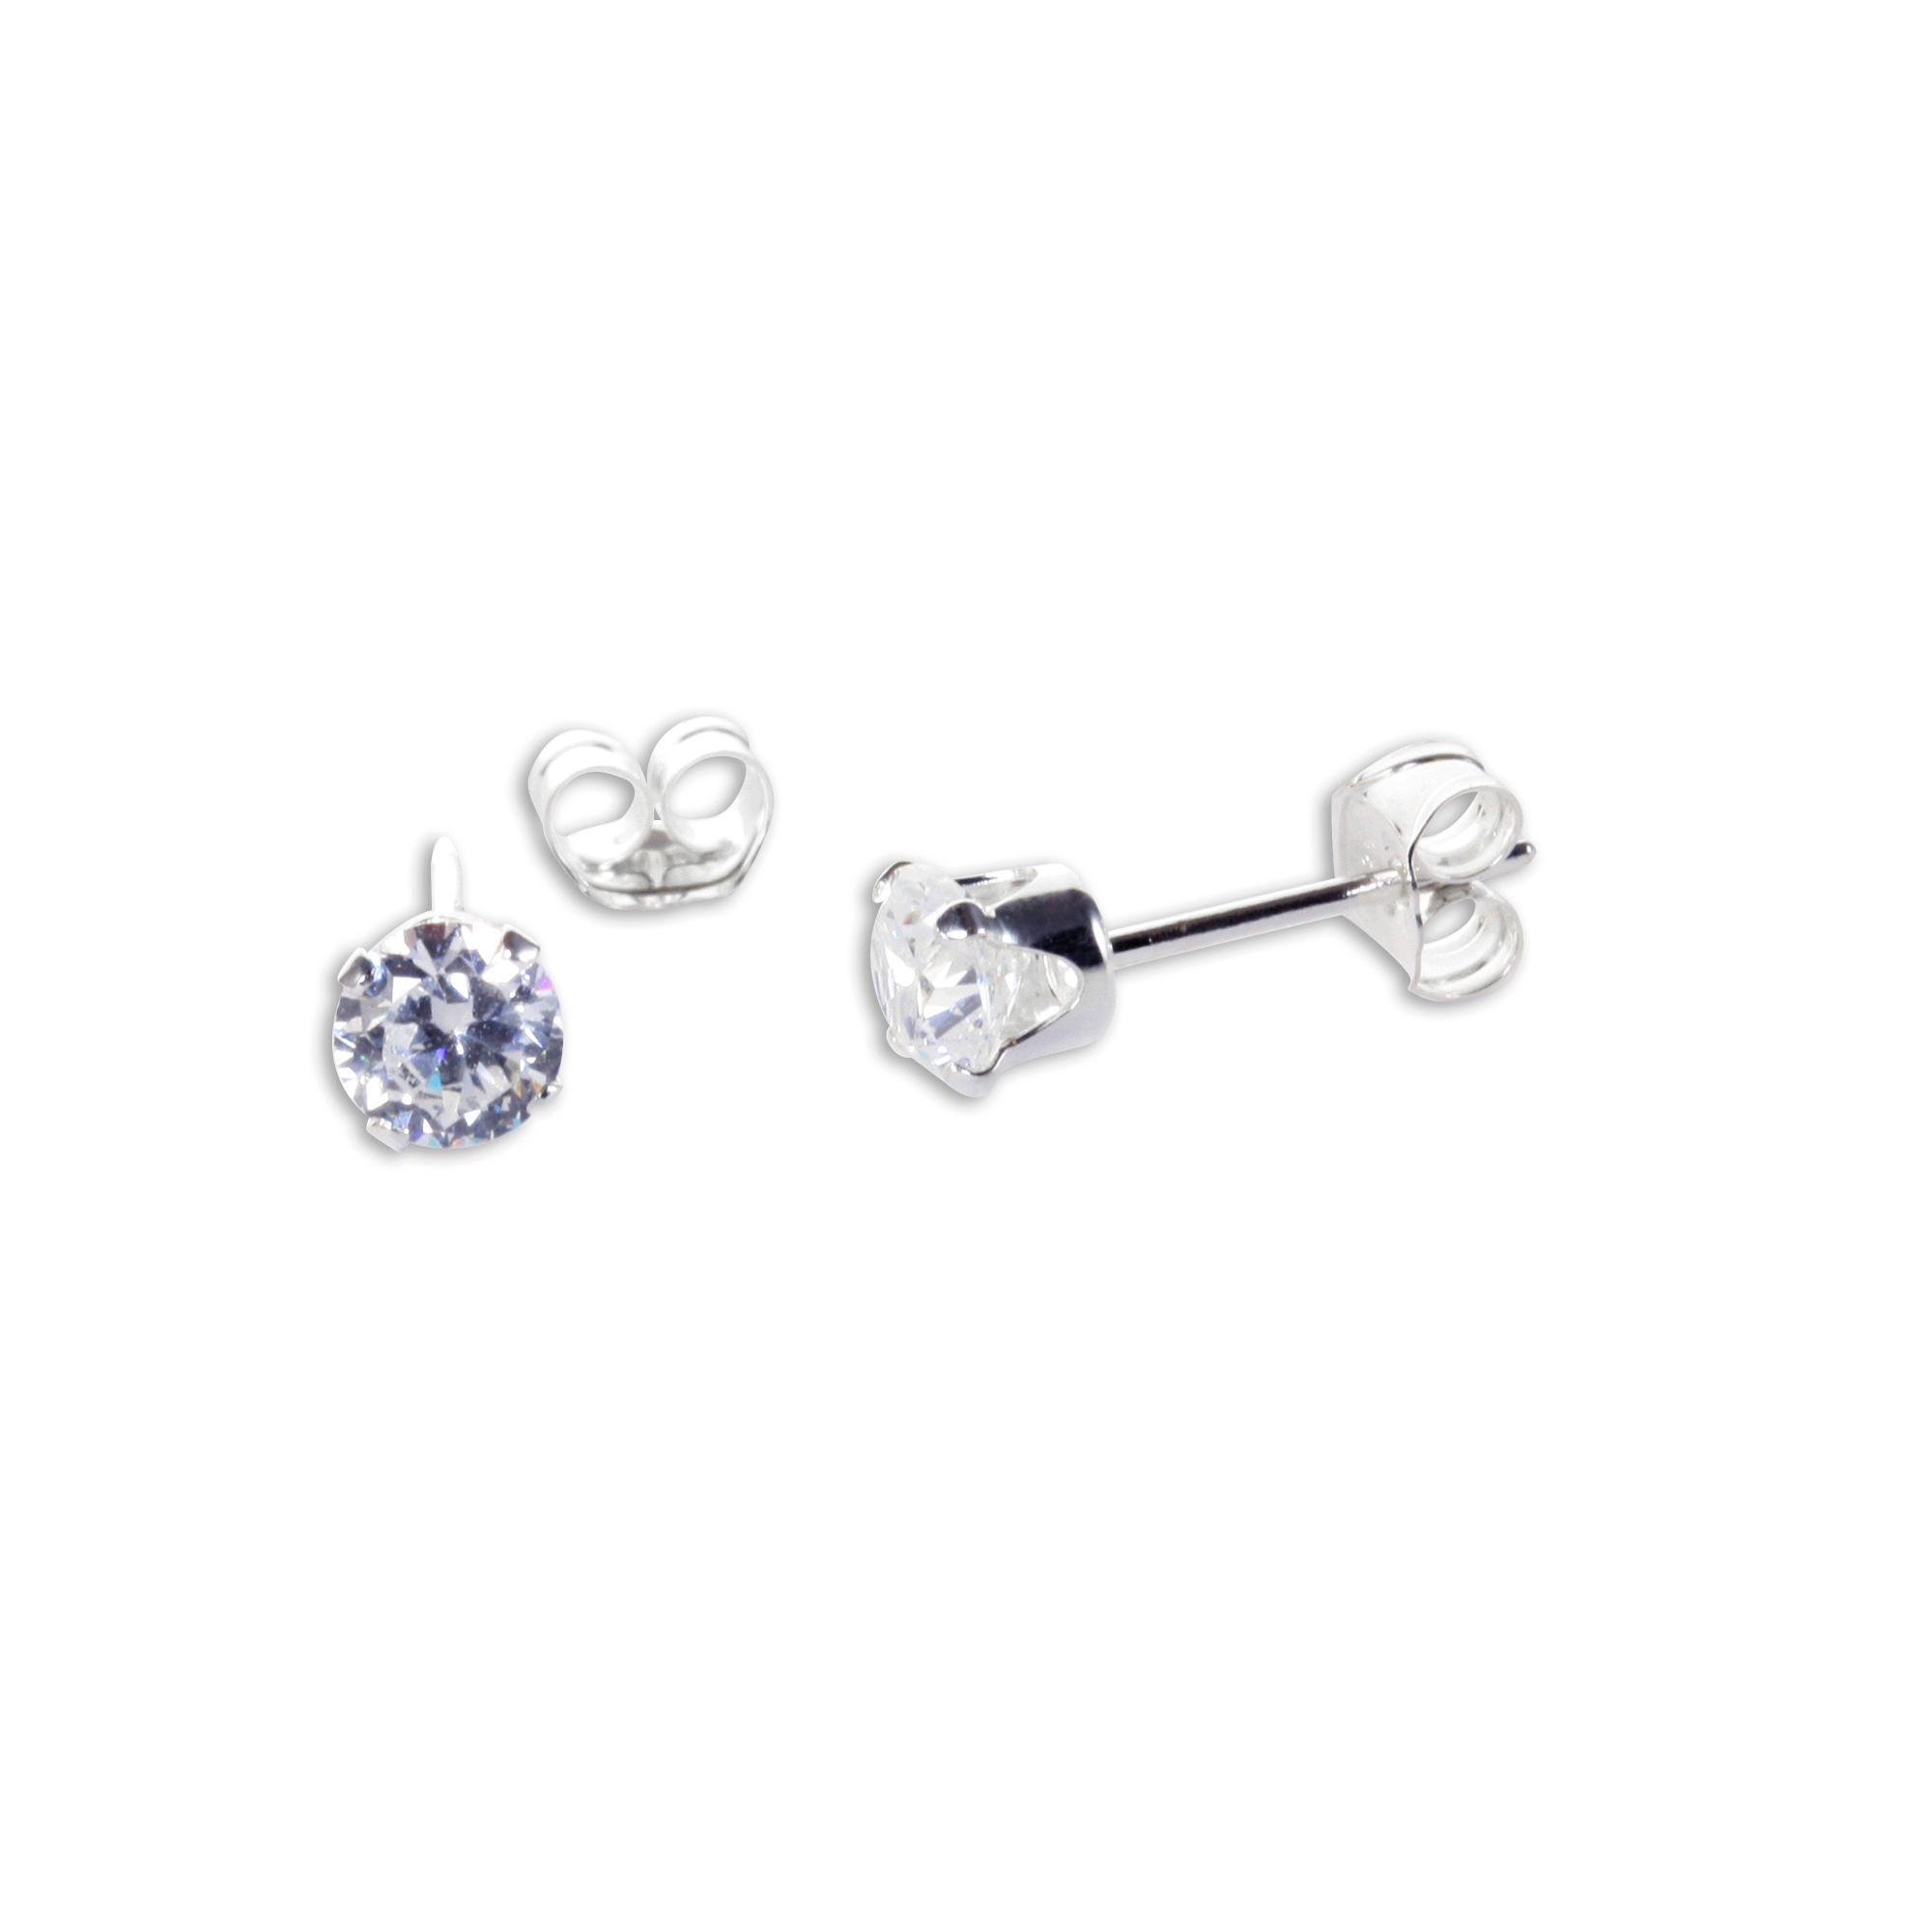 An image of Sterling Silver Clear CZ 4mm Round Stud Earrings